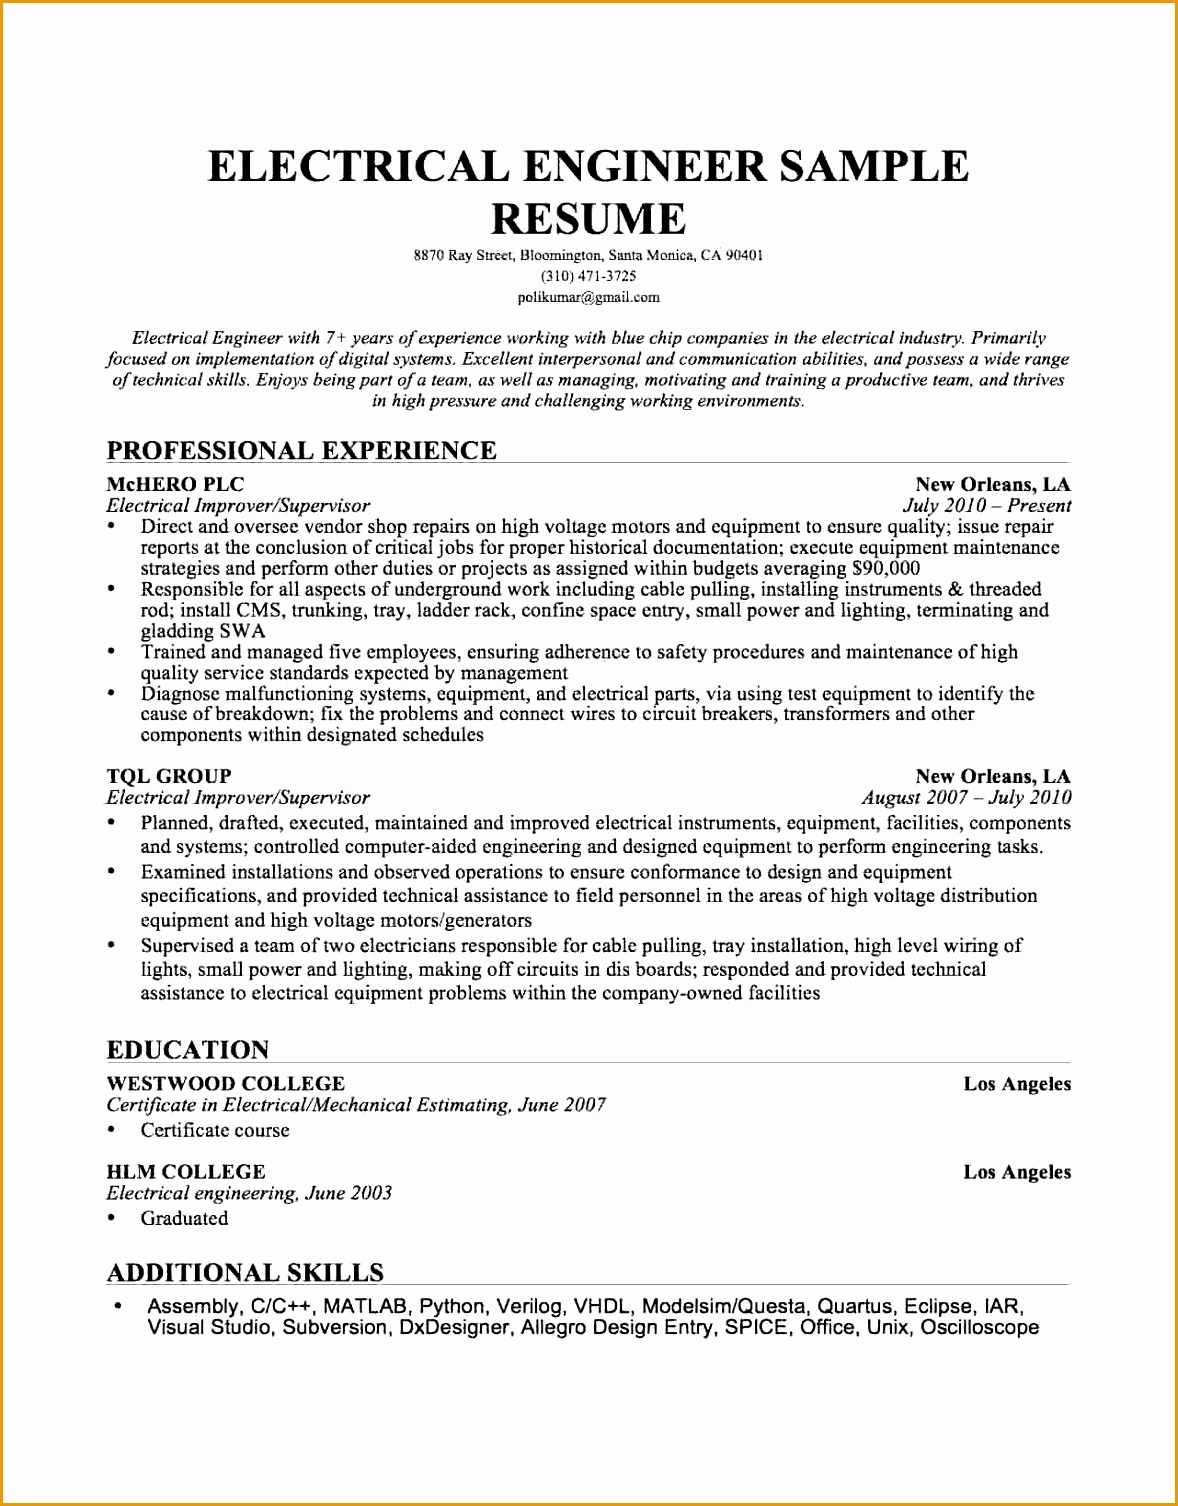 10 graduate electrical engineering resume15061178